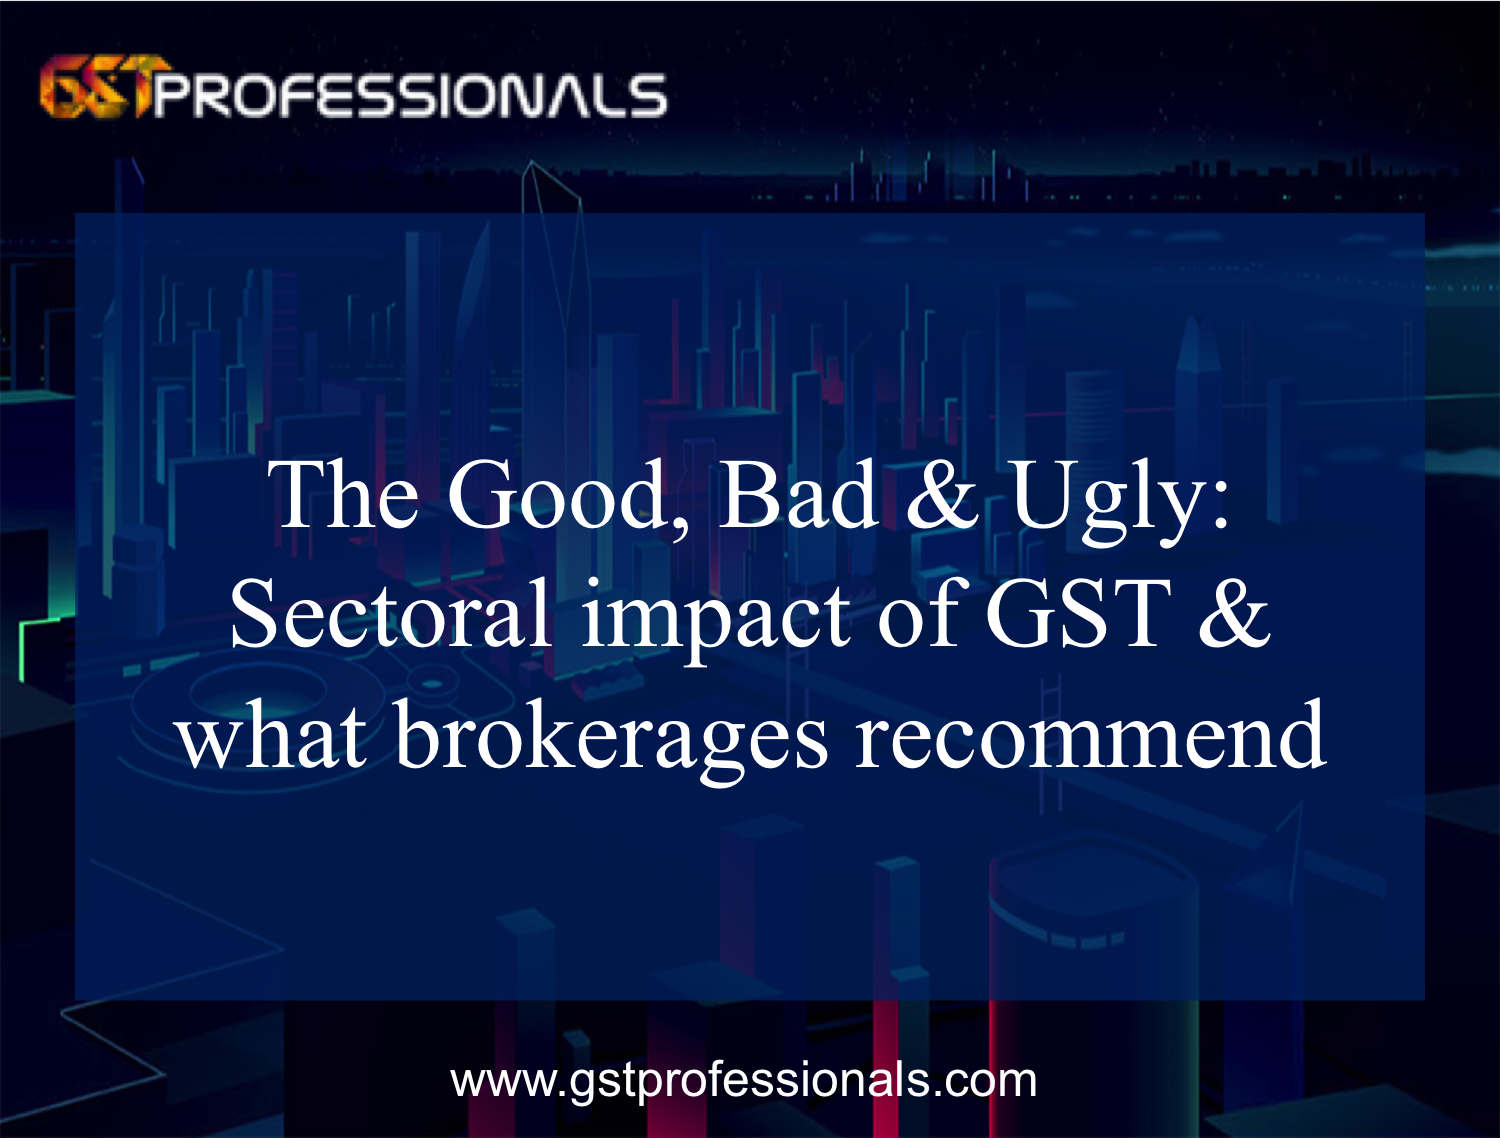 The good, bad & ugly: Sectoral impact of GST & what brokerages recommend